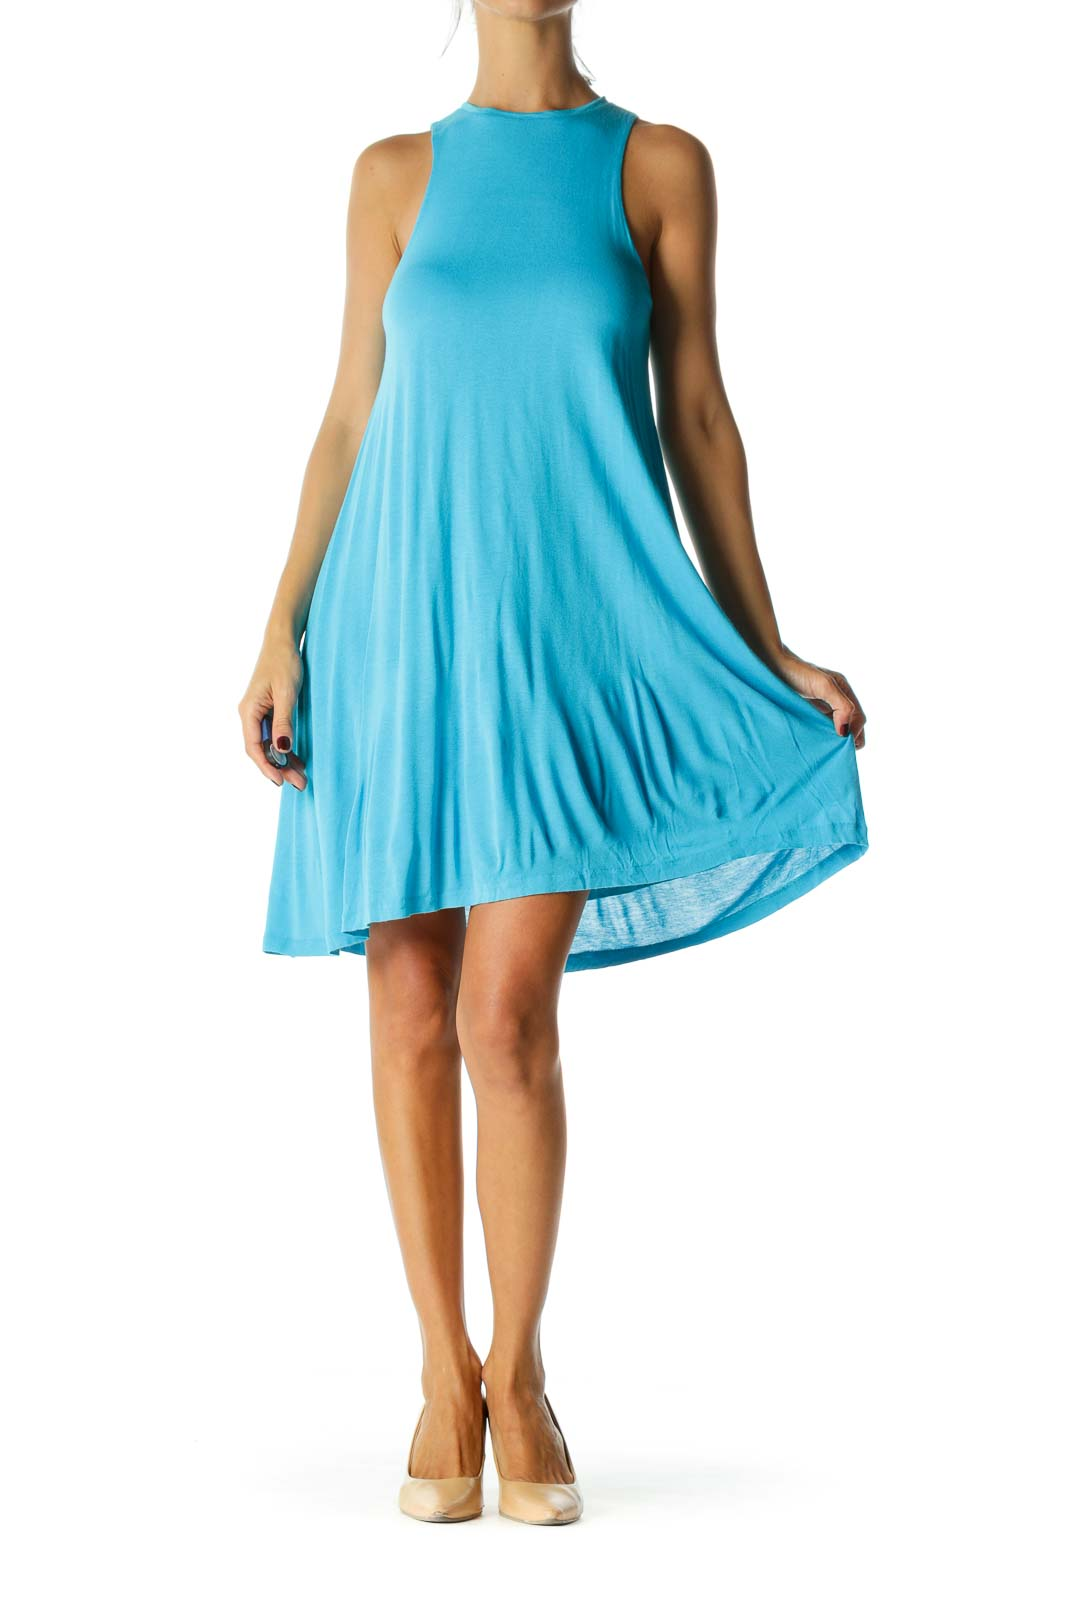 Blue High Round Neck Sleeveless Lined Jersey Knit Day Dress